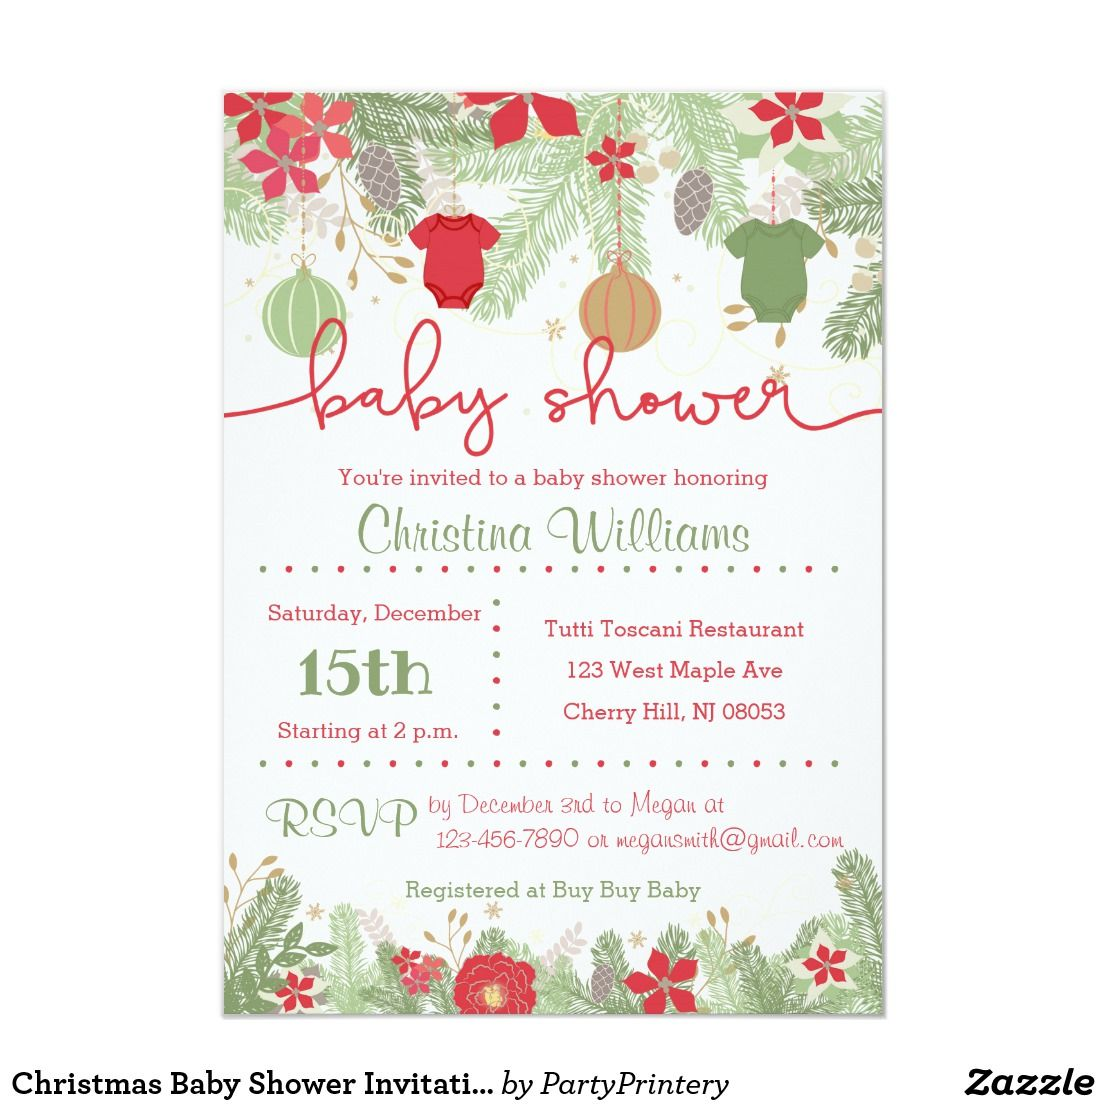 Christmas Baby Shower Invitations Zazzle Com In 2019